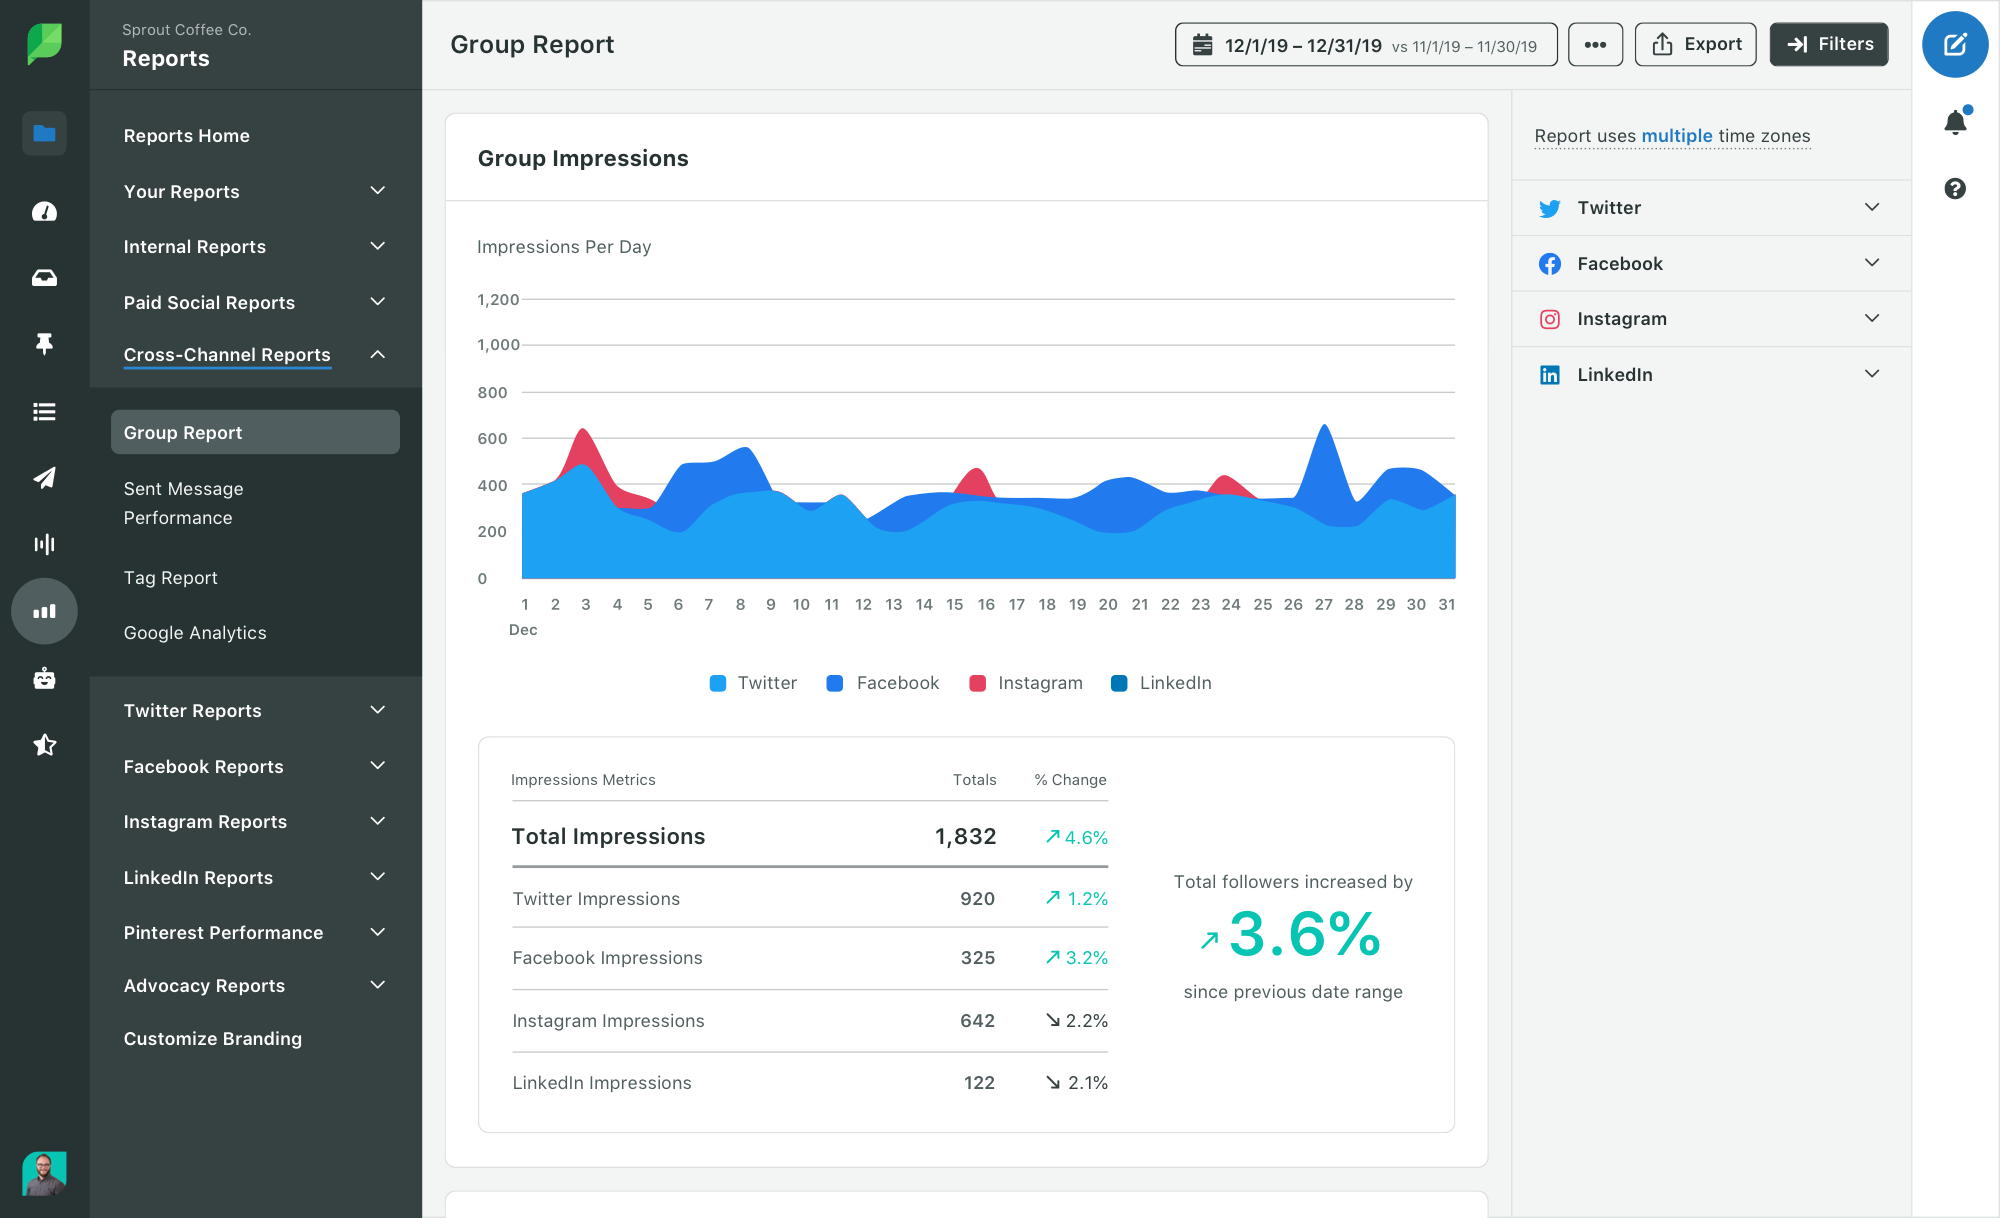 Sprout Social Product Image of Analytics Cross-Channel Group Report Impressions